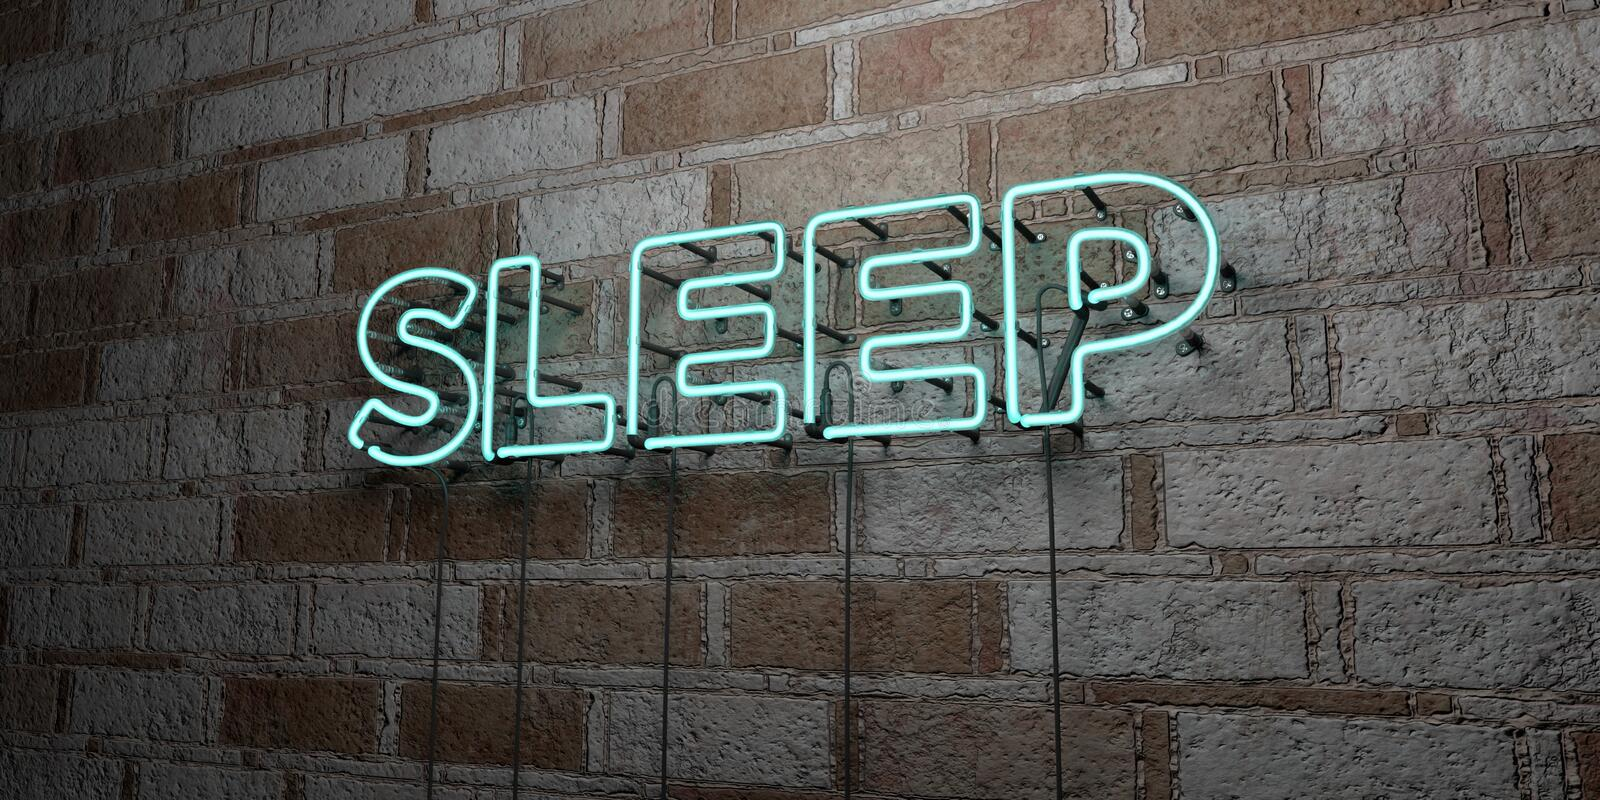 SLEEP - Glowing Neon Sign on stonework wall - 3D rendered royalty free stock illustration. Can be used for online banner ads and direct mailers stock illustration